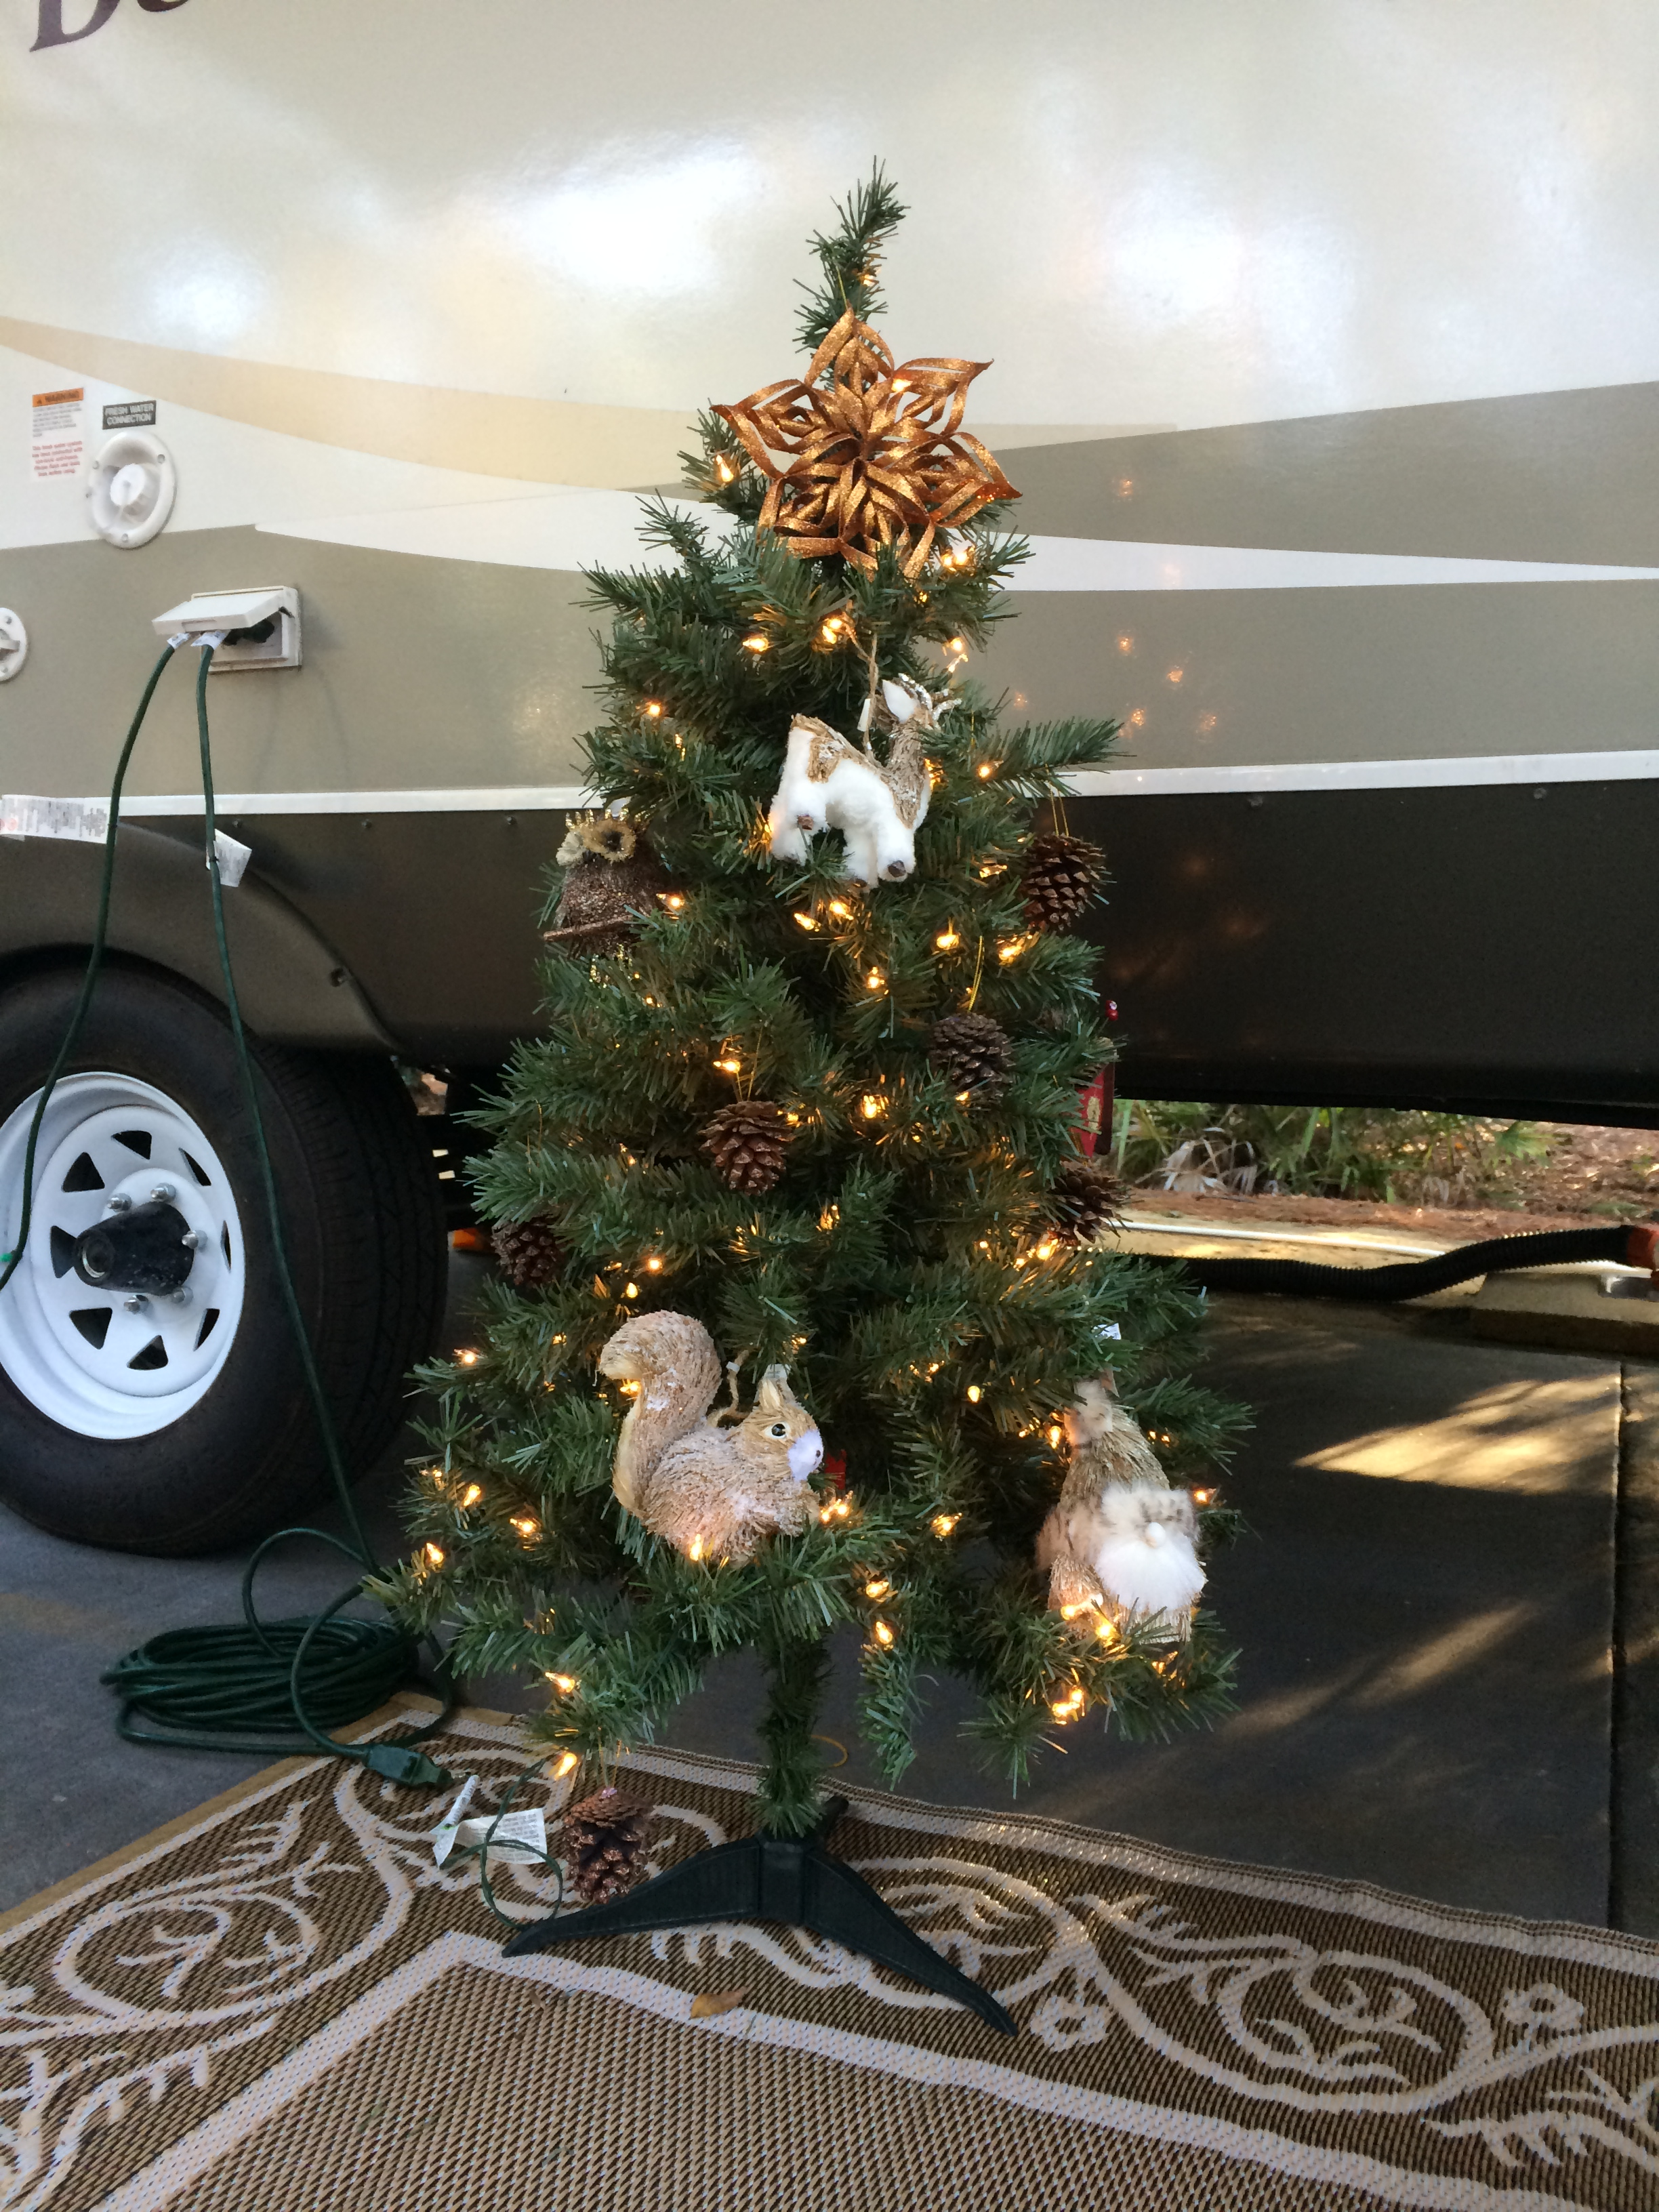 meachams rv disney fort wilderness resort camper christmas tree